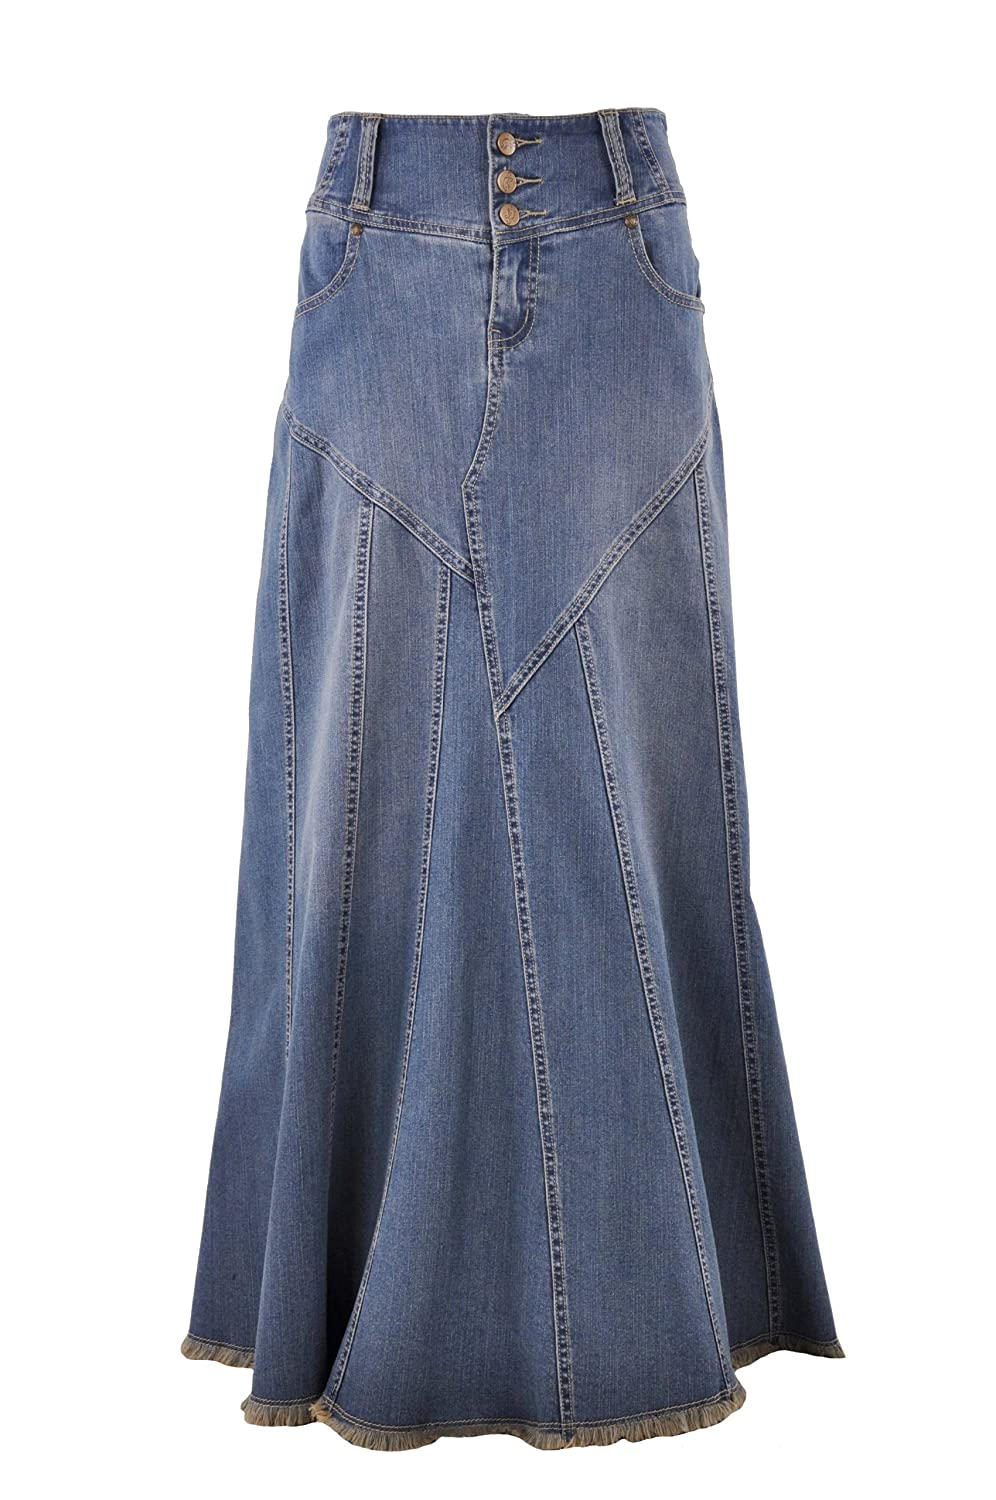 Style J Fantastic Flared Long Jean Skirt At Amazon Women S Clothing